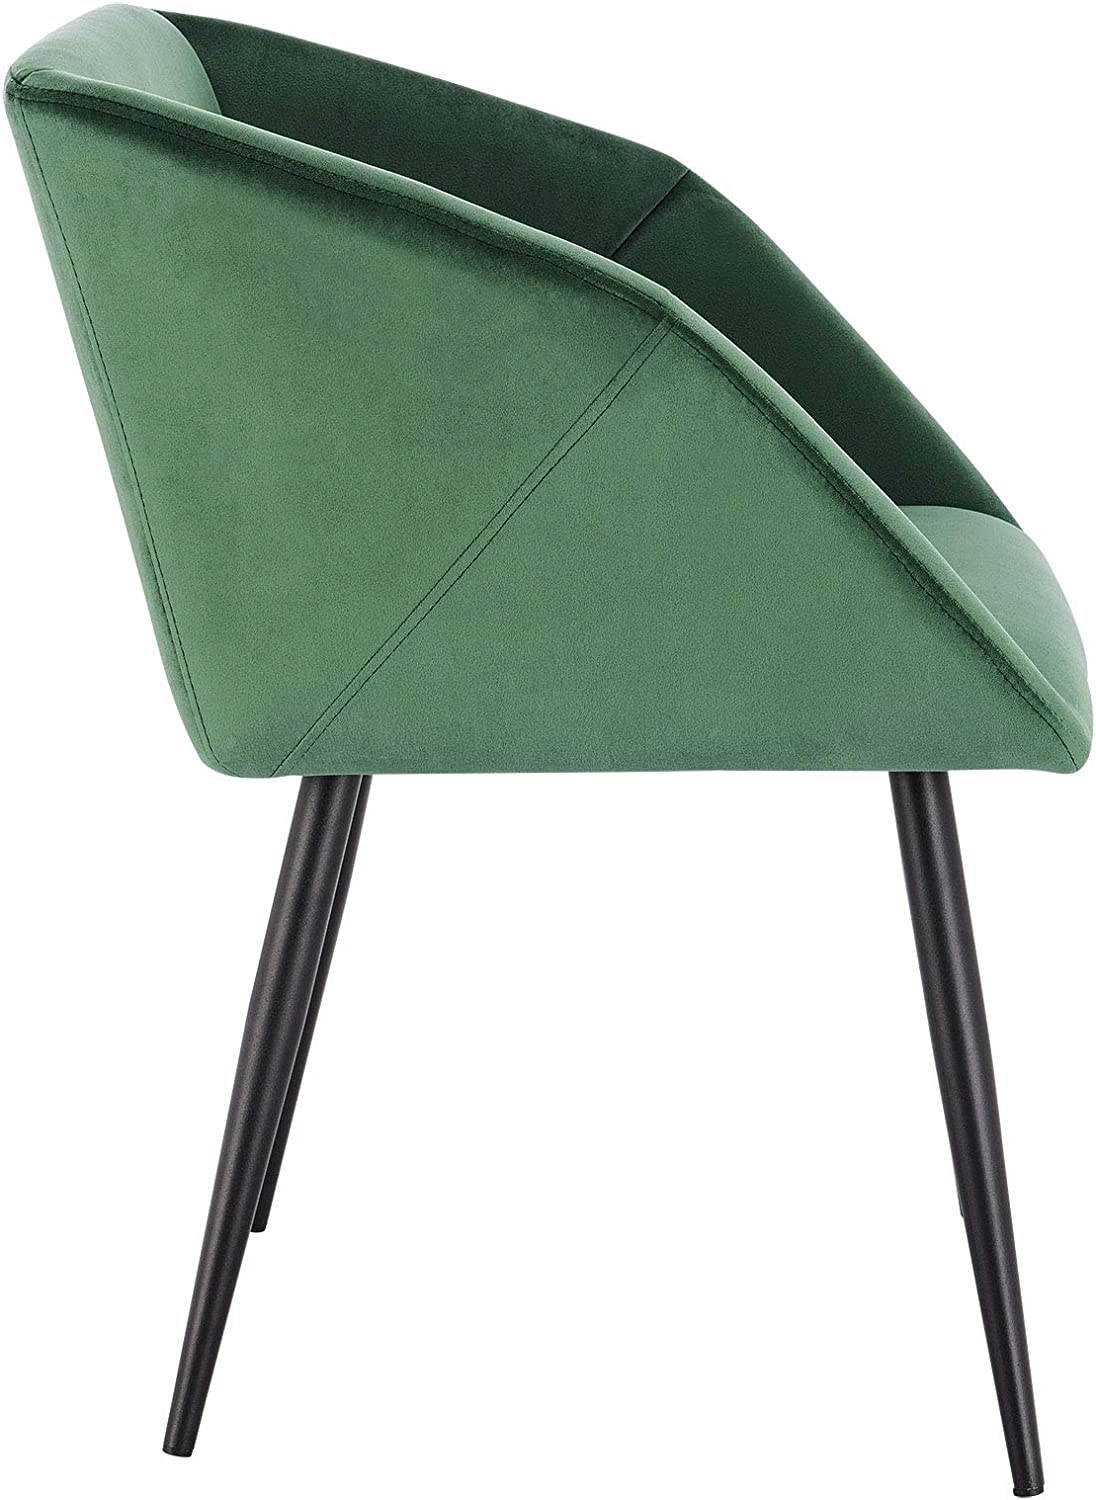 EUGAD Dining Room Chairs Set of 2 PCS Kitchen Side Chairs for Bedroom Living Room Dark Green Velvet Dining Chairs with Arms Rest, Back Support & Metal Legs, 0293BY-2 Dark Green